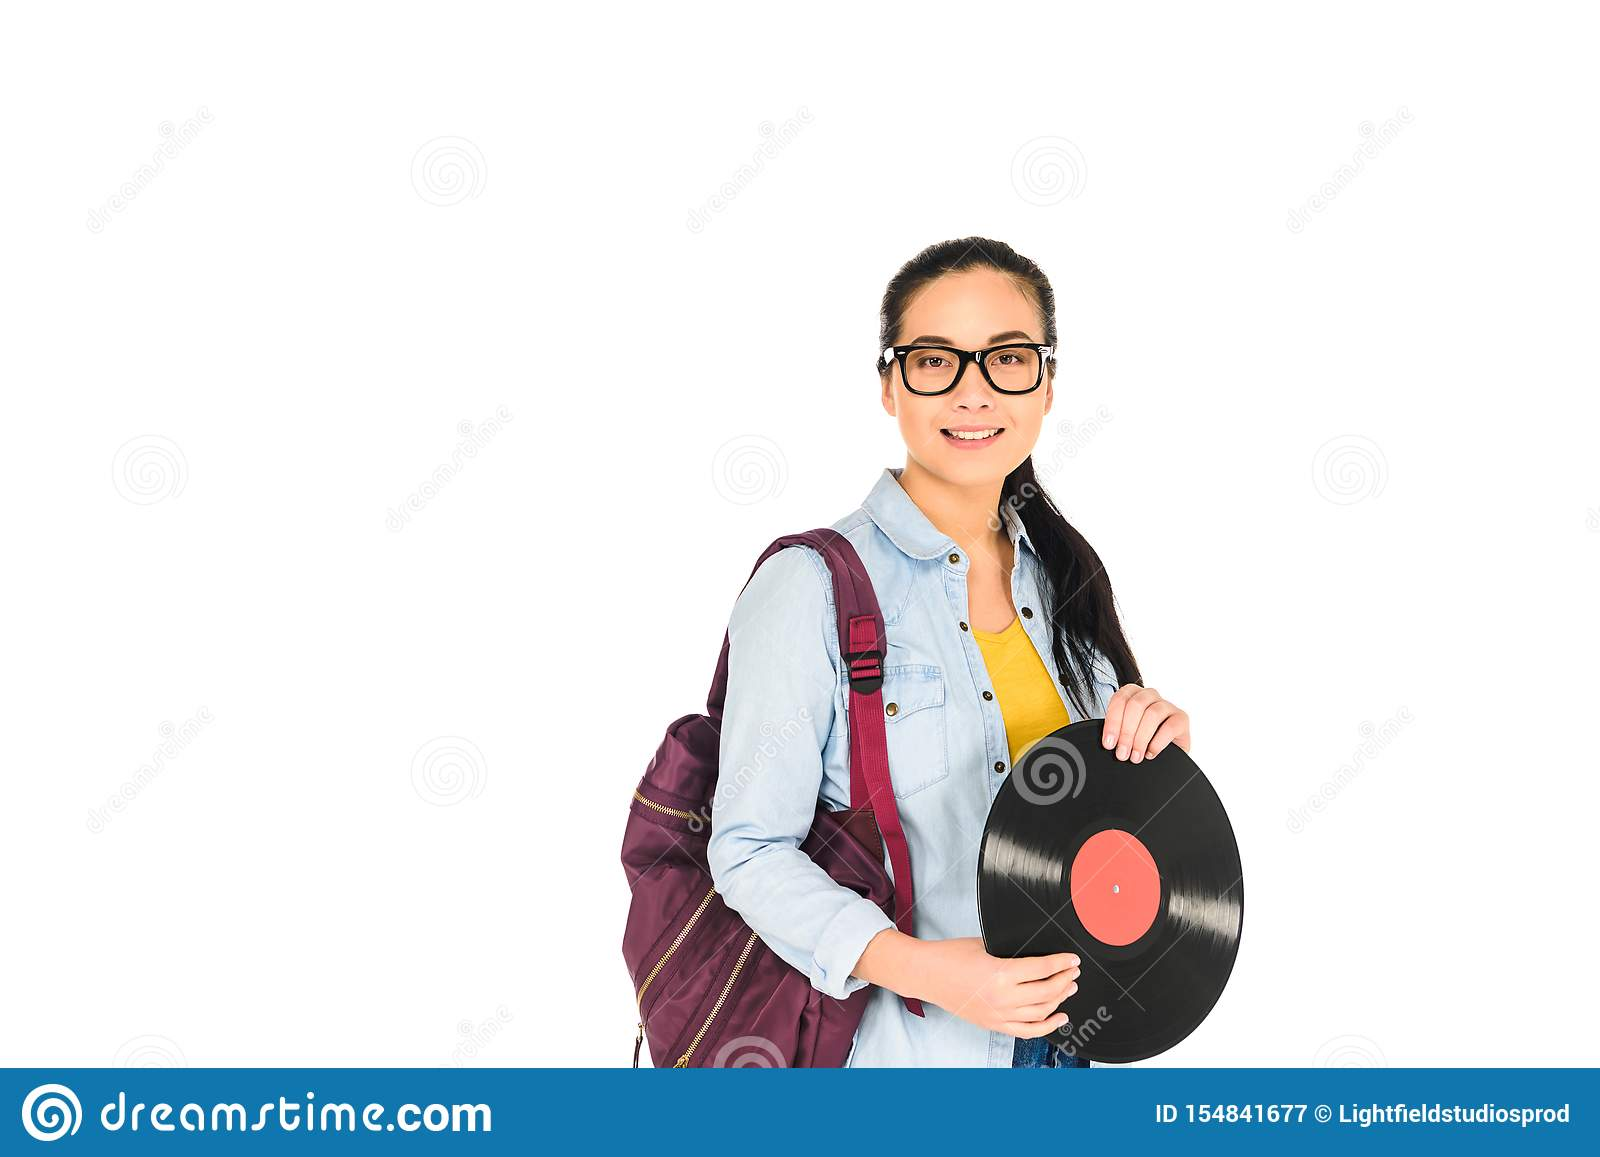 smiling woman standing with backpack and holding vinyl record in hands isolated